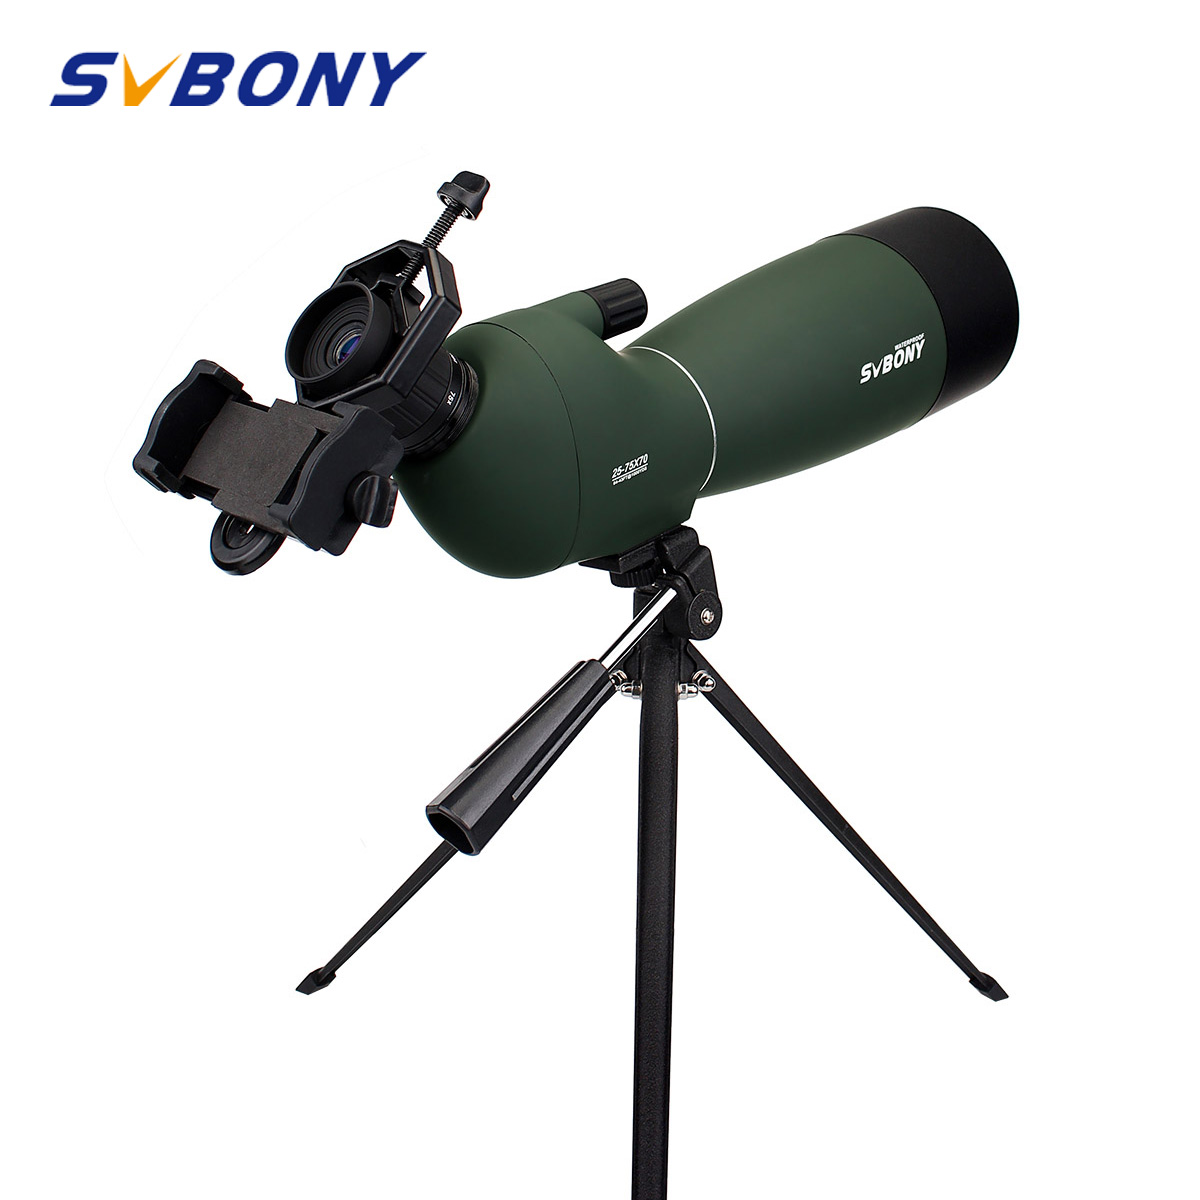 Svbony SV28 50 60 70mm Spotting Scope Zoom Telescope Waterproof Birdwatch Hunting Monocular Universal Phone Adapter